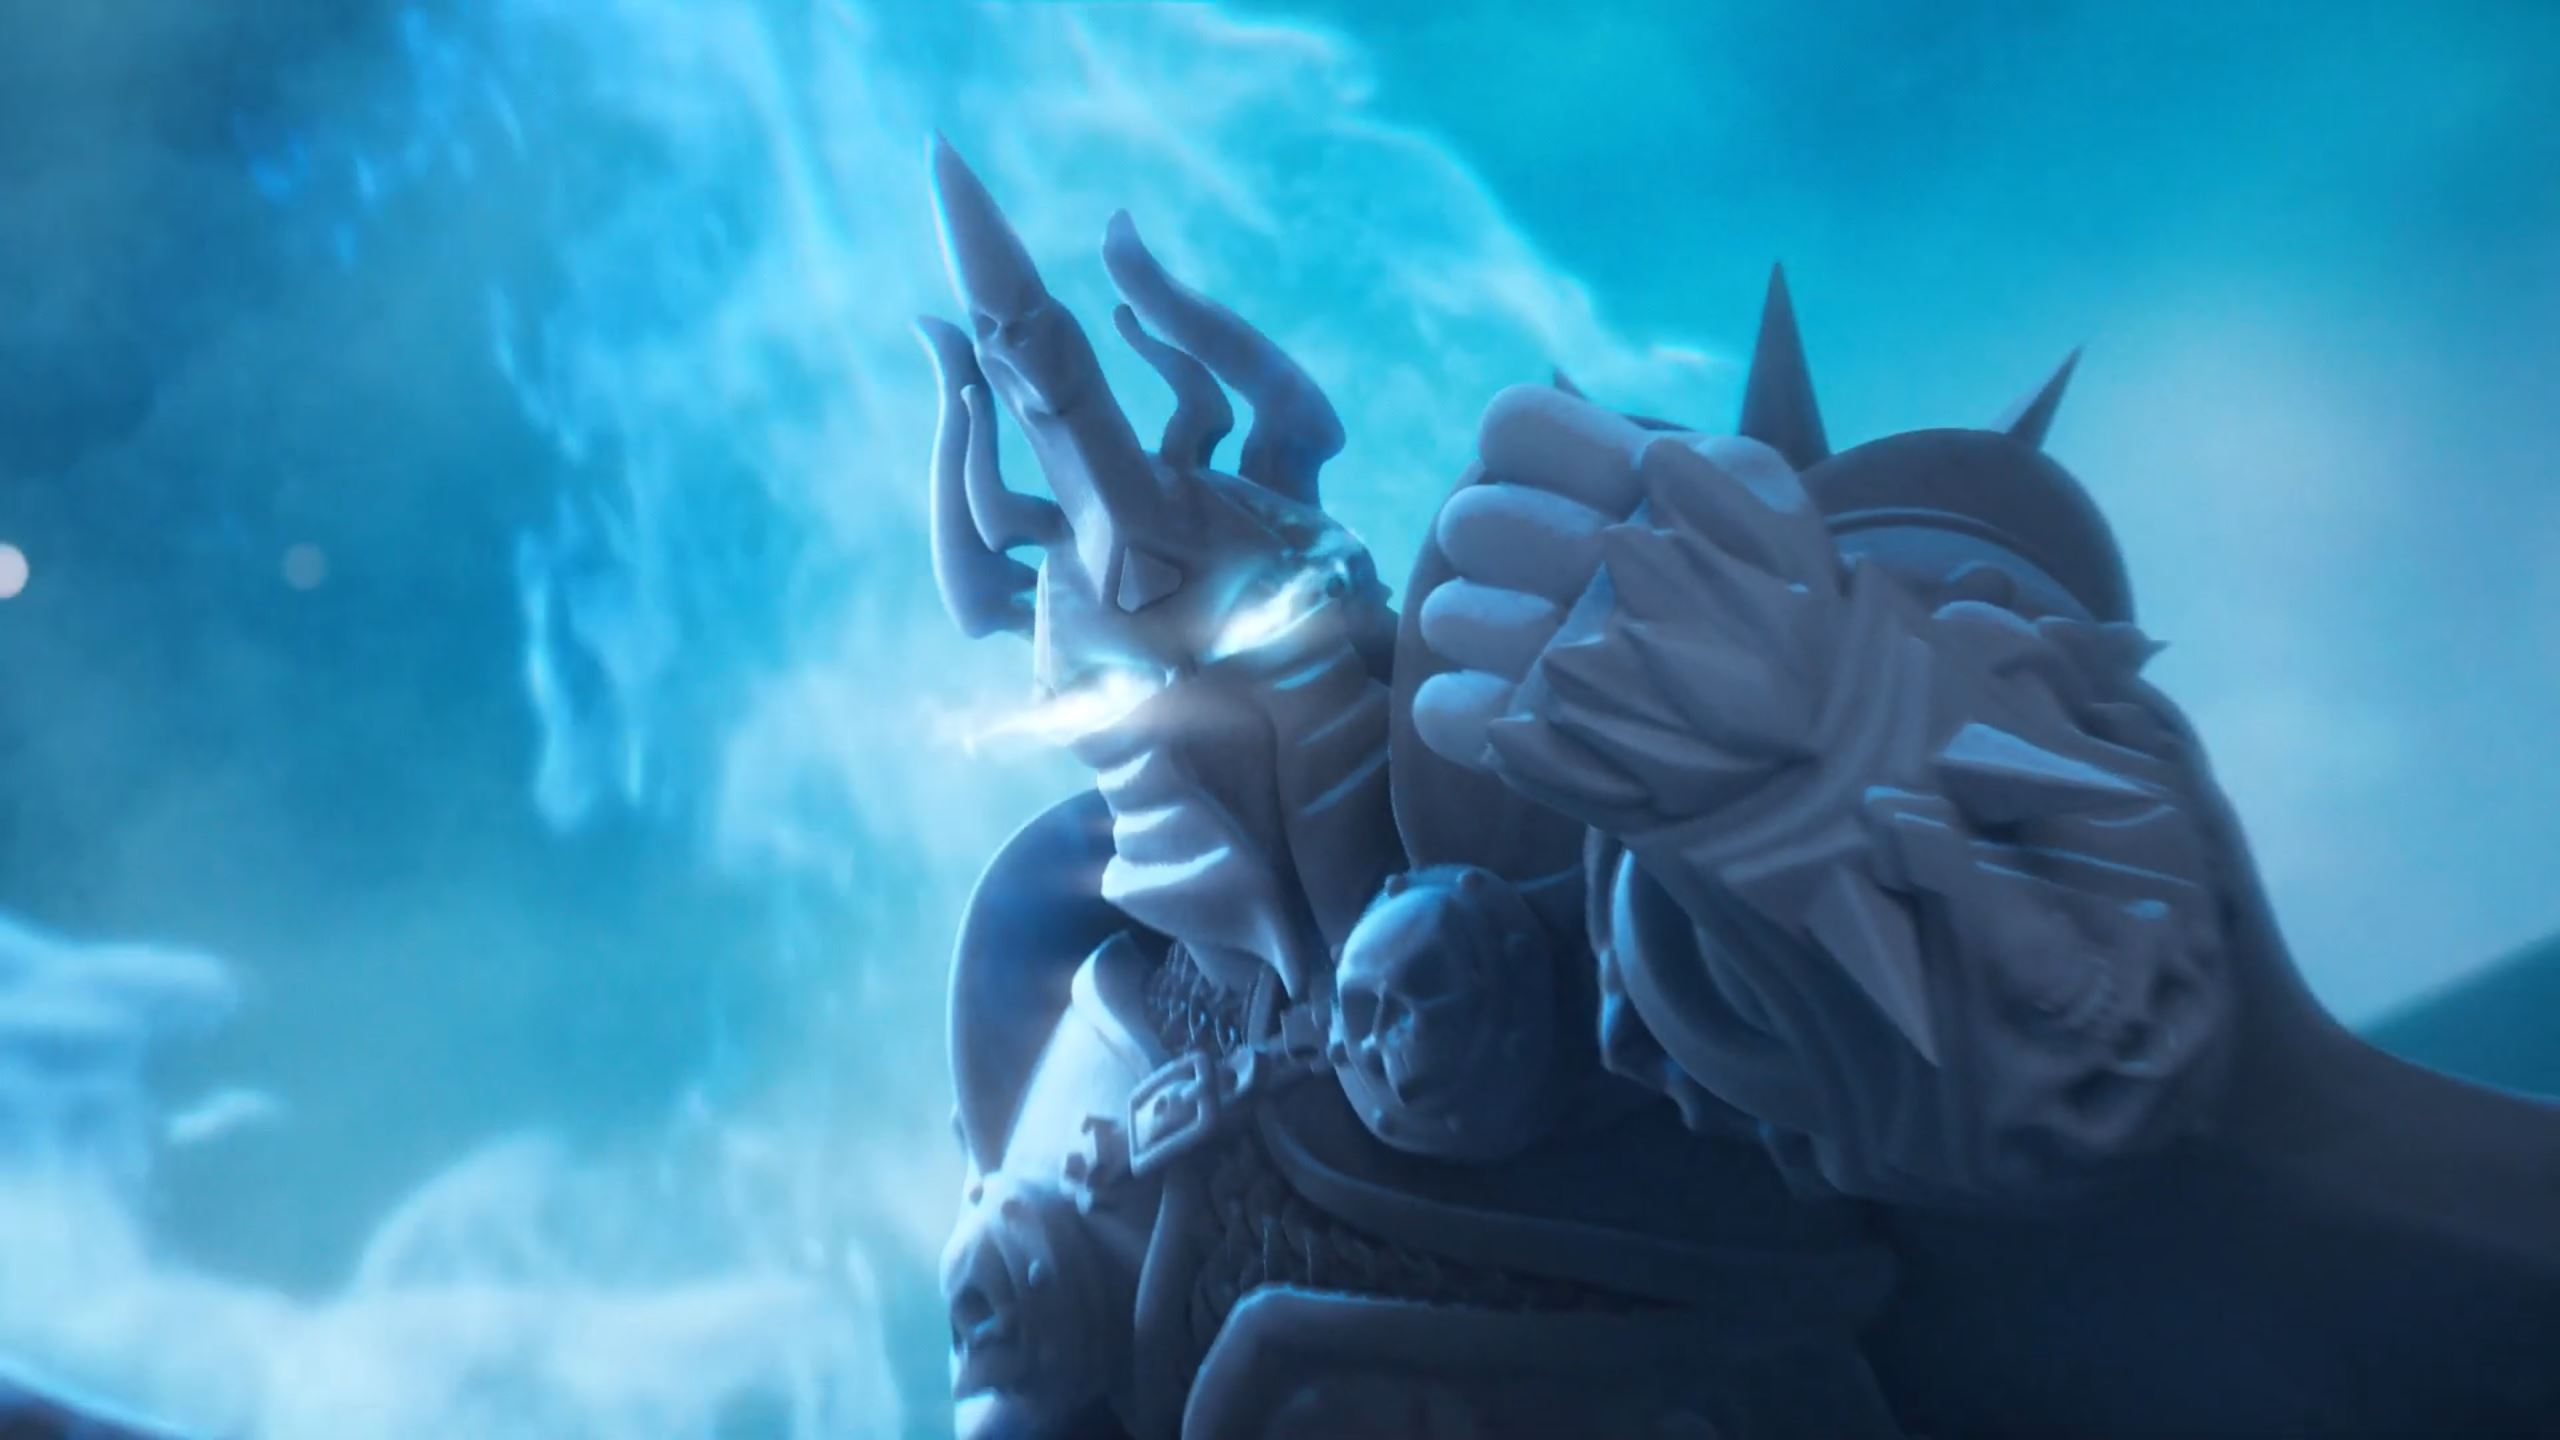 A close up of a render of a gray plastic Lich King miniature, overlaid with digital effect.